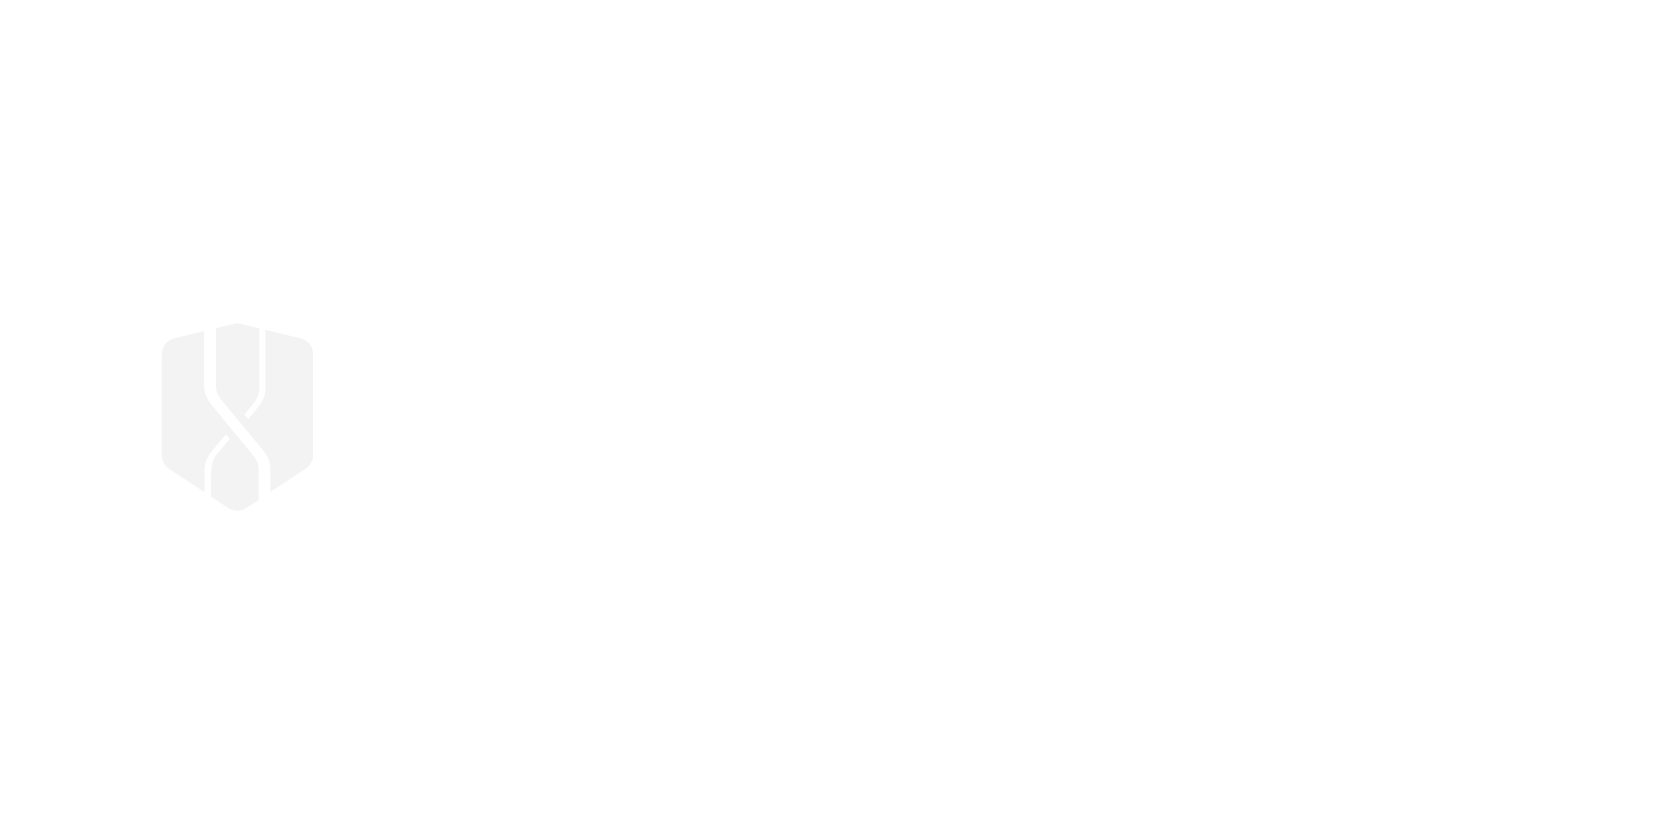 Cylance - Security7 Networks